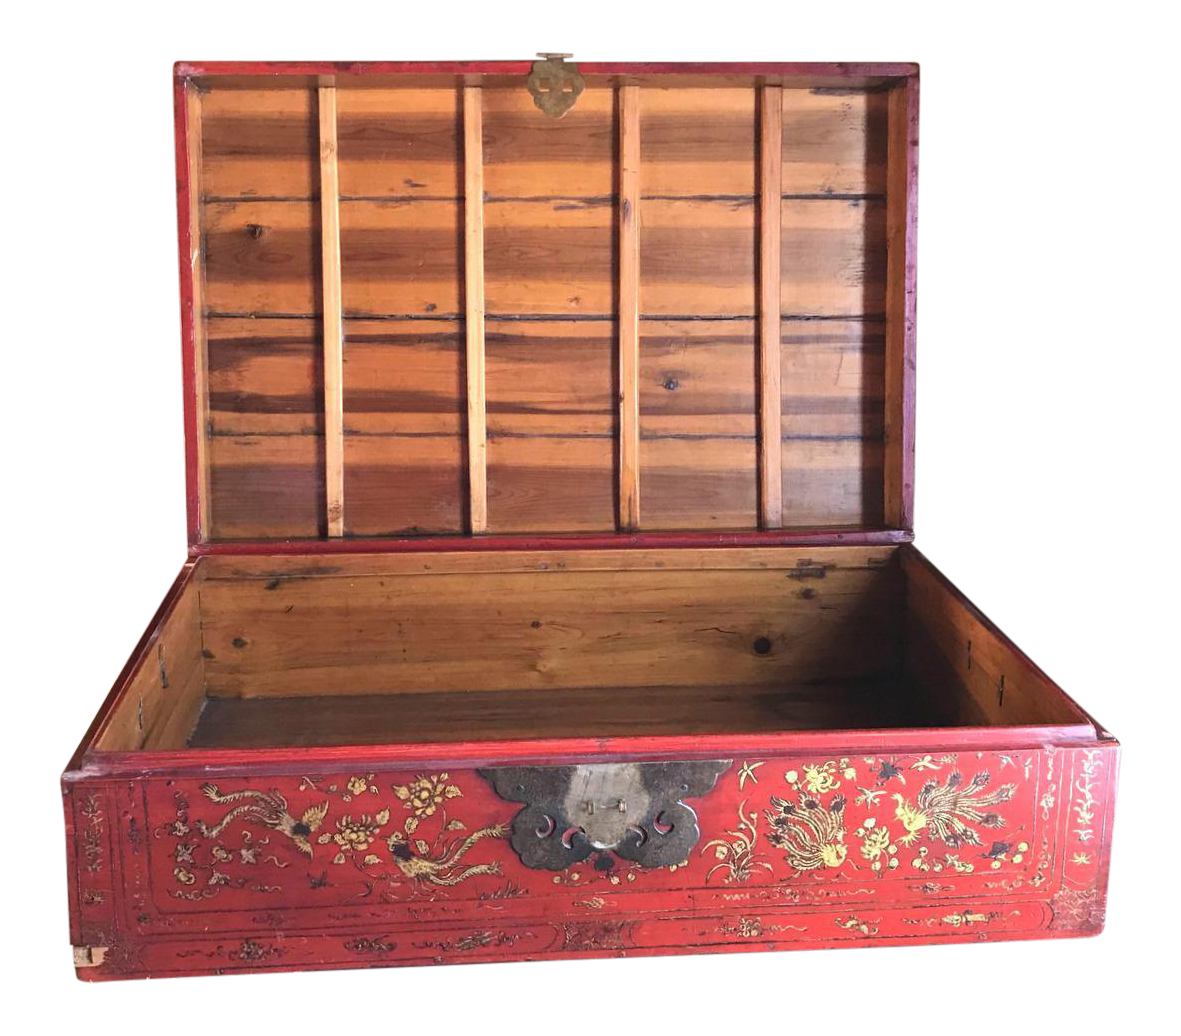 Charmant Red Asian Trunk, Vintage Wood Storage Box, Golden Roosters